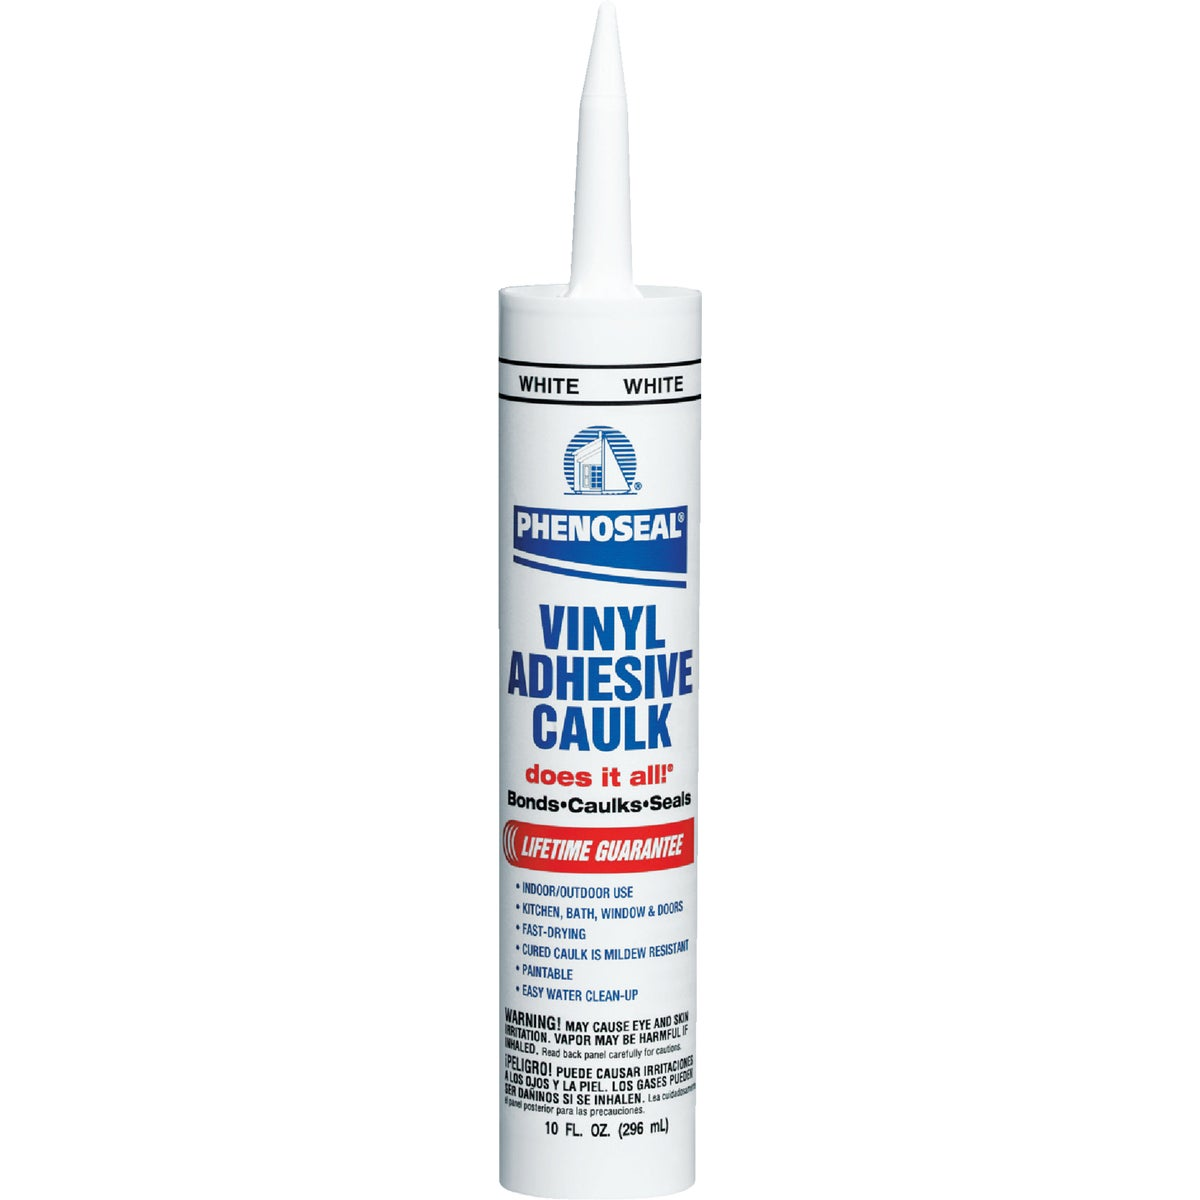 WHITE ADHESIVE CAULK - 00005 by Dap Inc